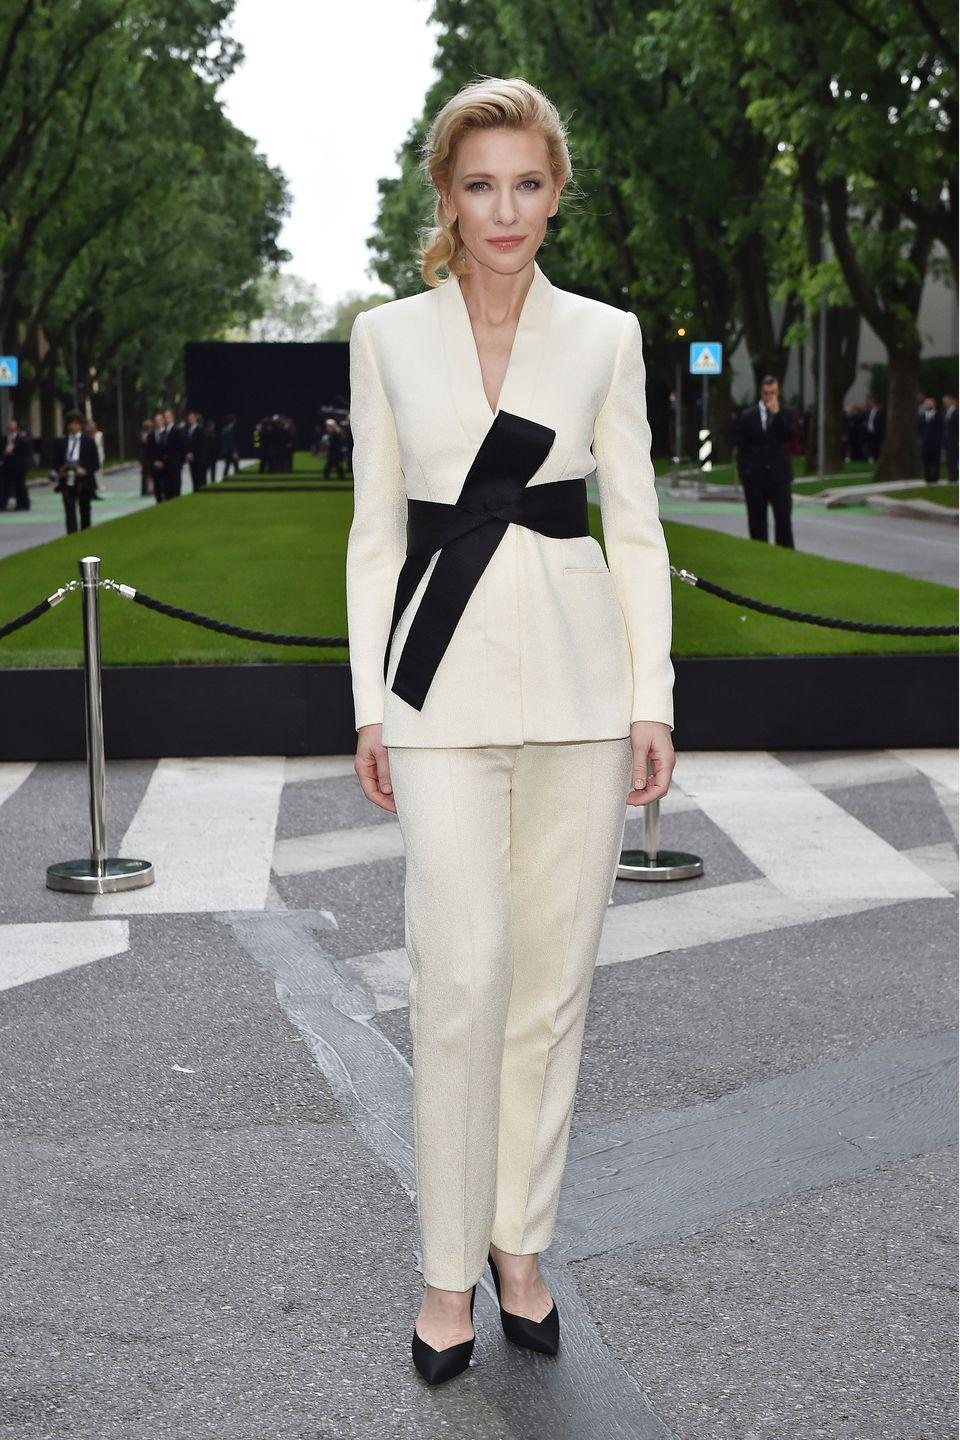 <p>Both Mulan and Cate Blanchett prove that belted jackets and pants can be just as ladylike as a ballgown.</p>